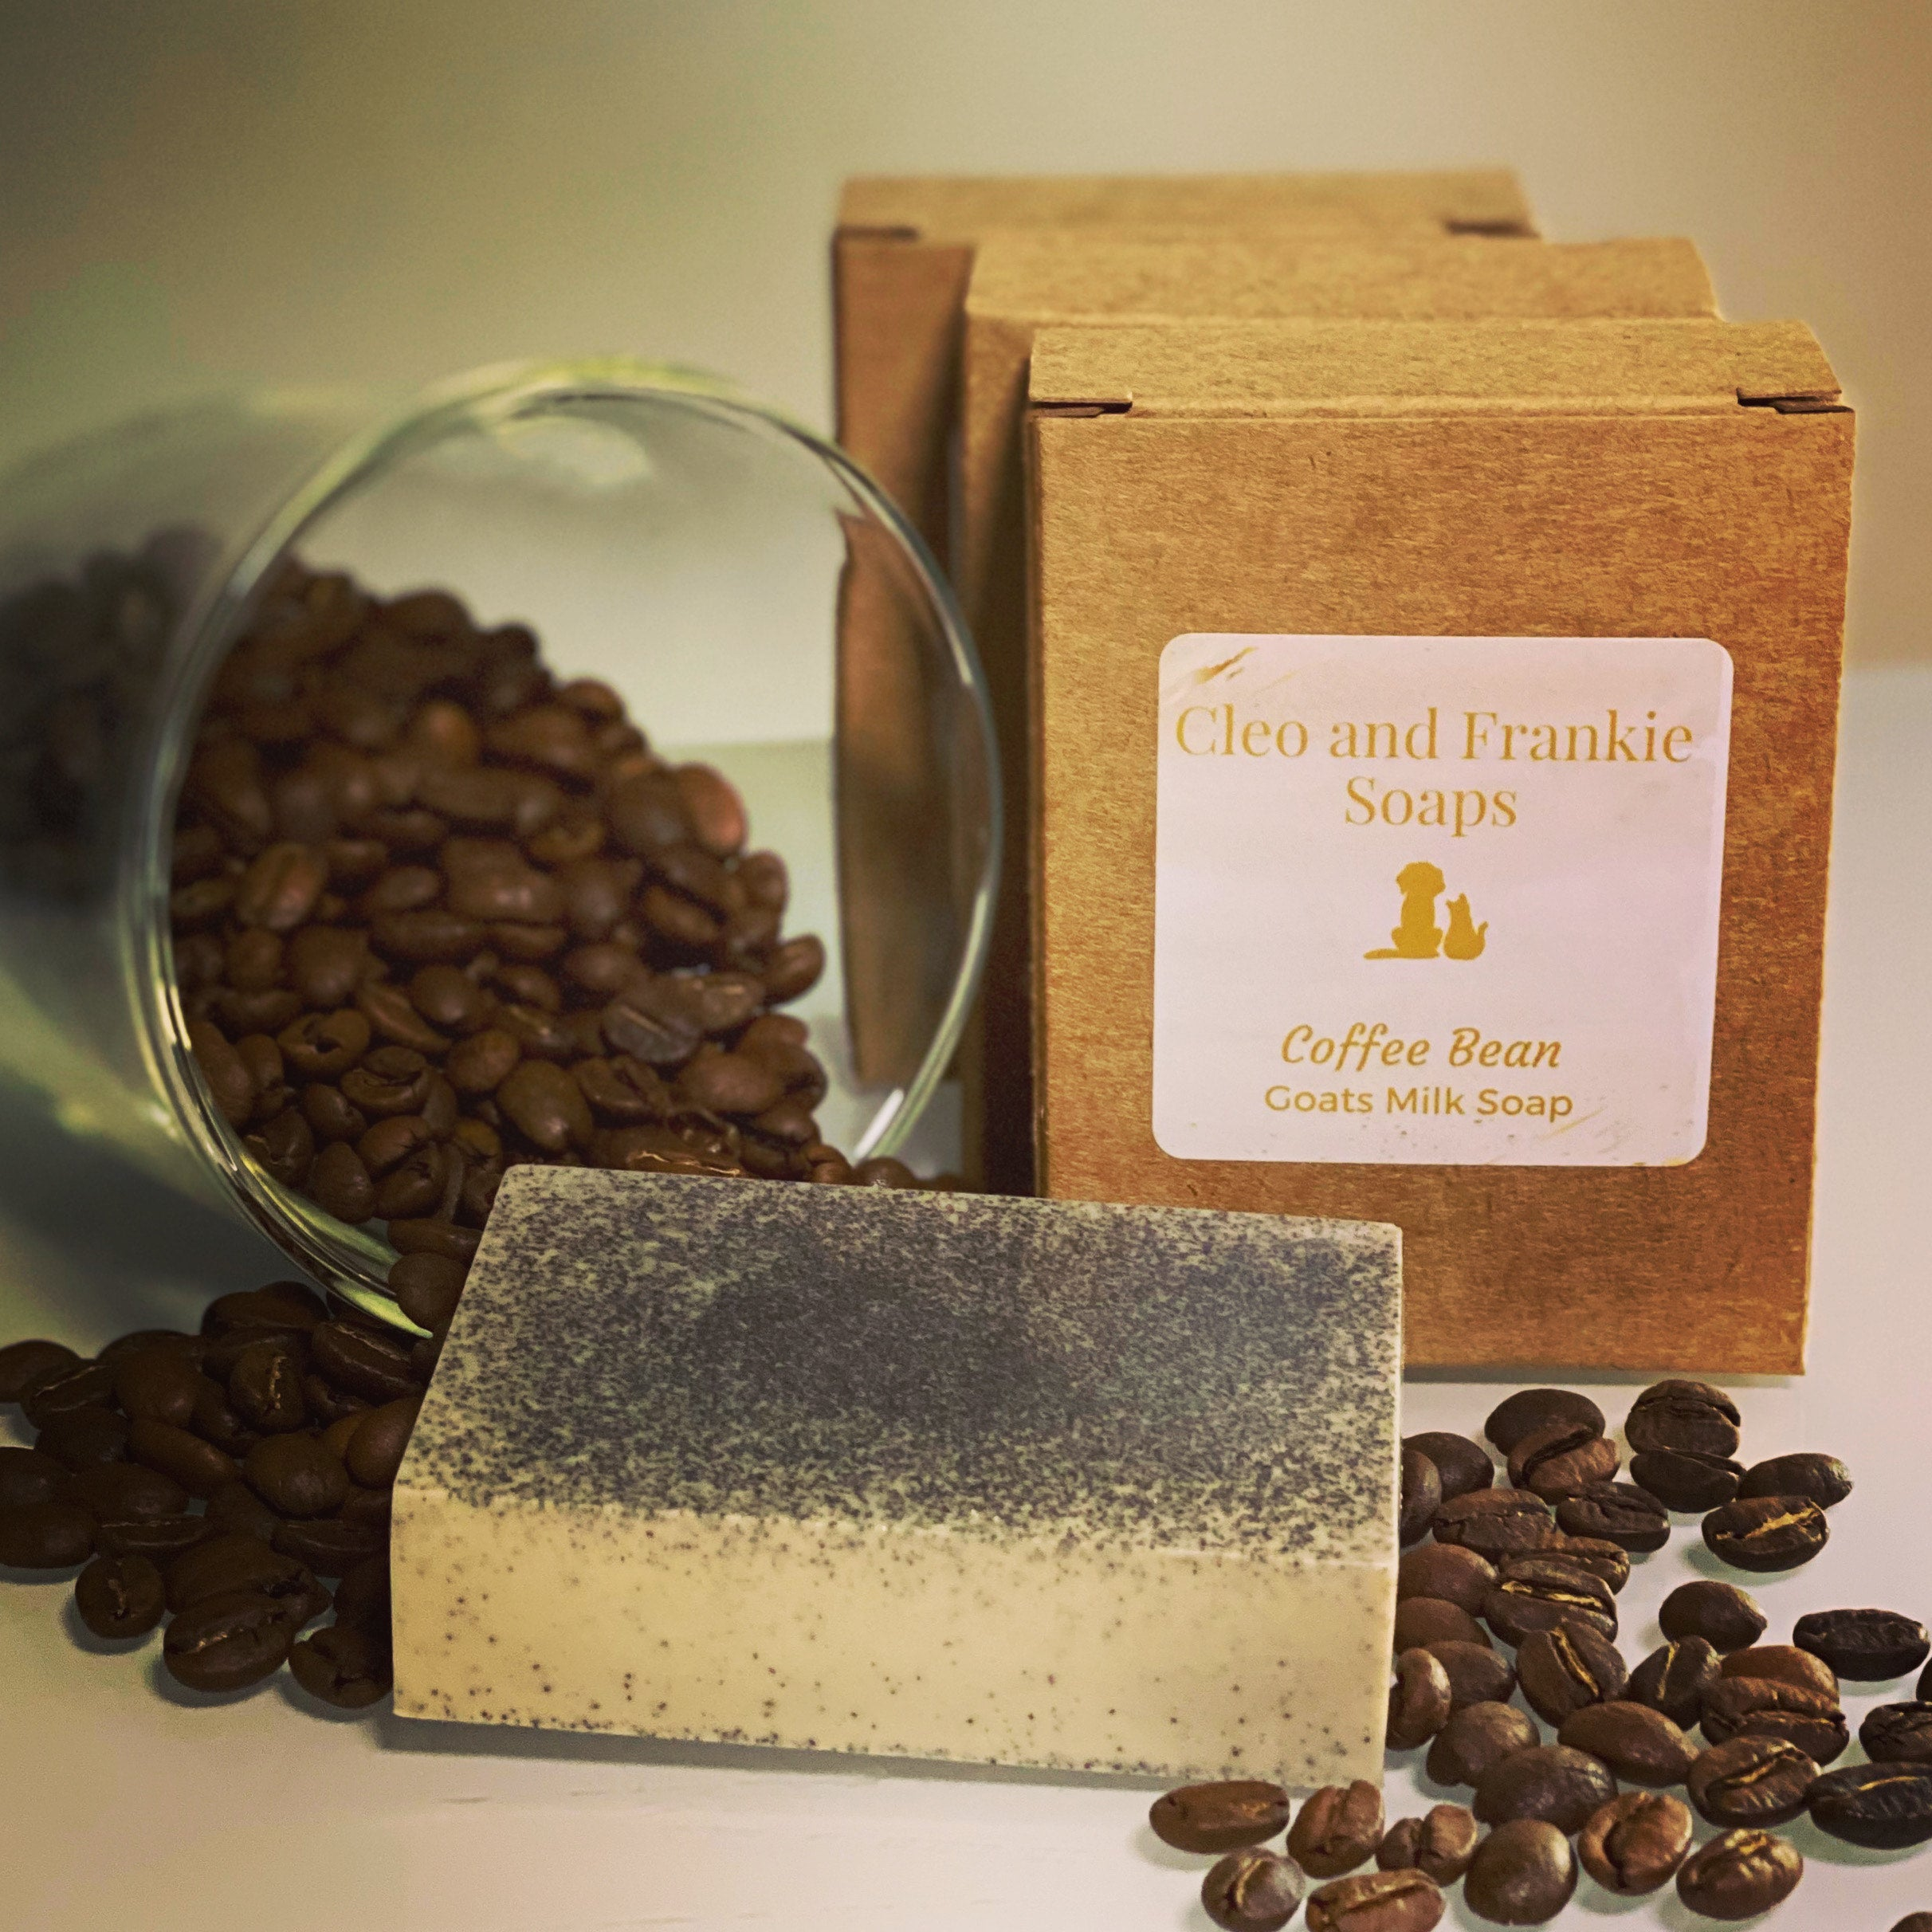 Coffee Bean Goats Milk Soap